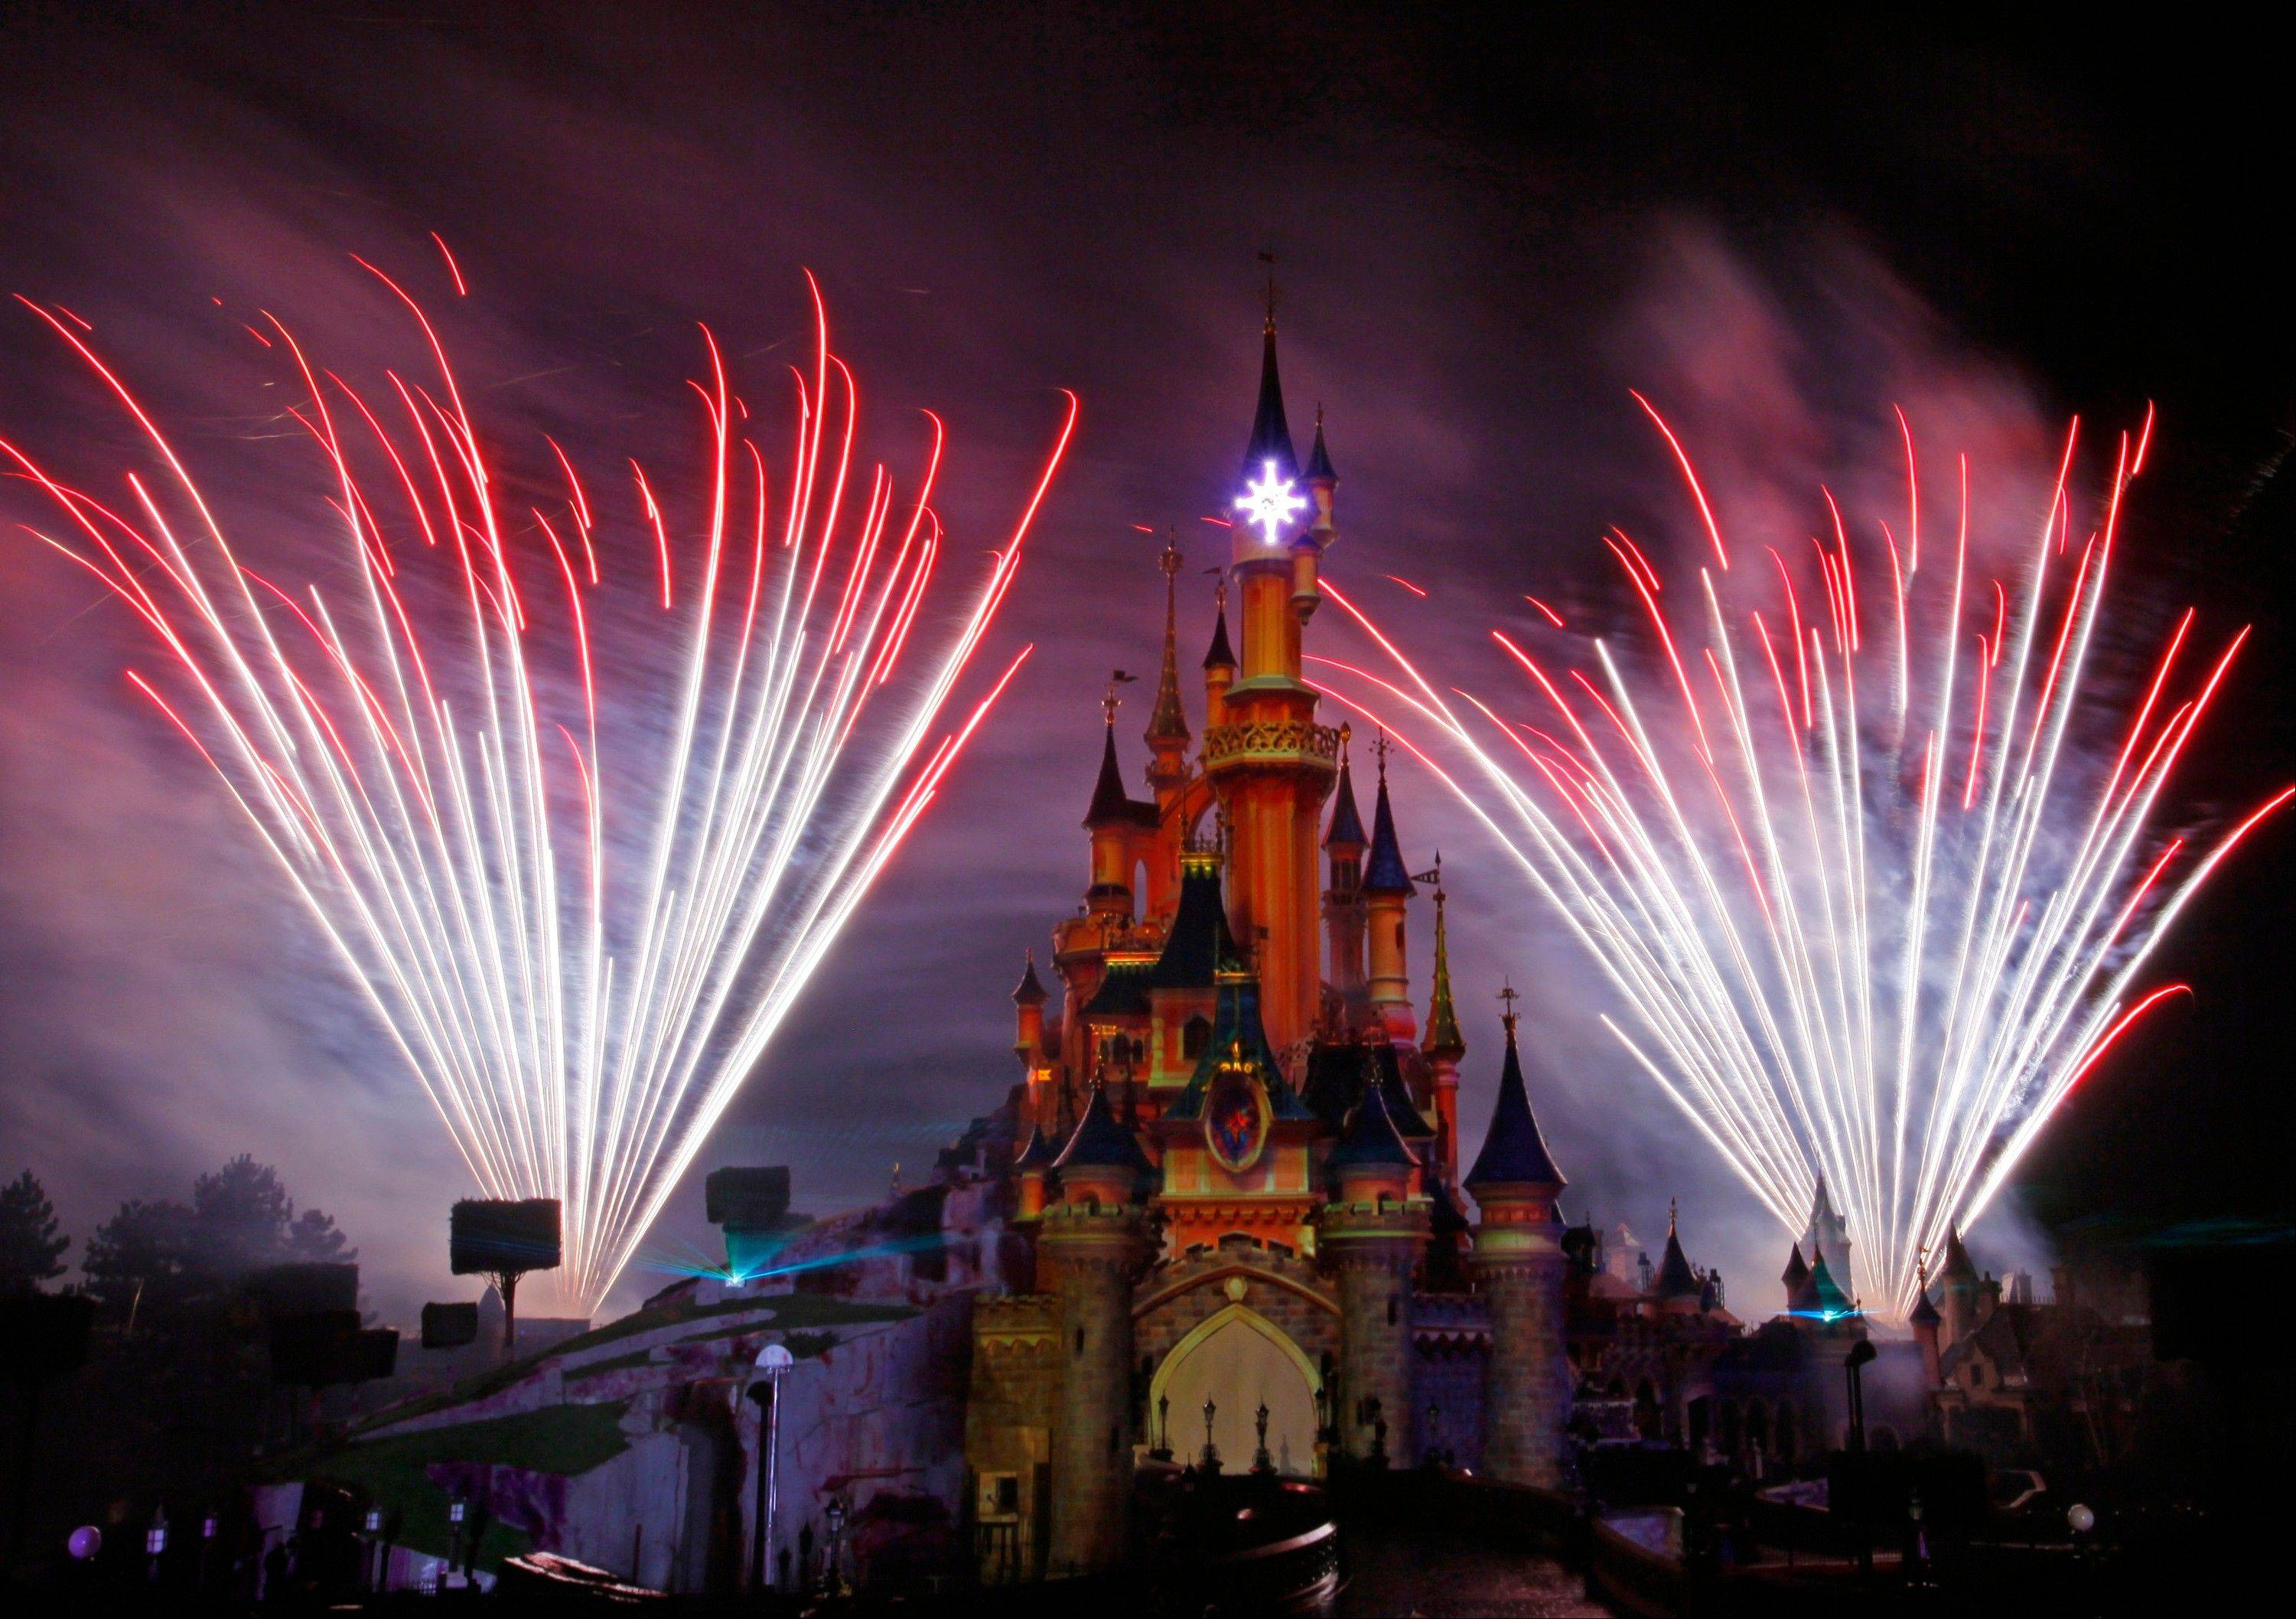 Associated PressThe Walt Disney Co. said Thursday that its net income in the latest quarter rose 14 percent thanks to an uptick in revenue driven by higher consumer spending at its theme parks and on its cruise ships.